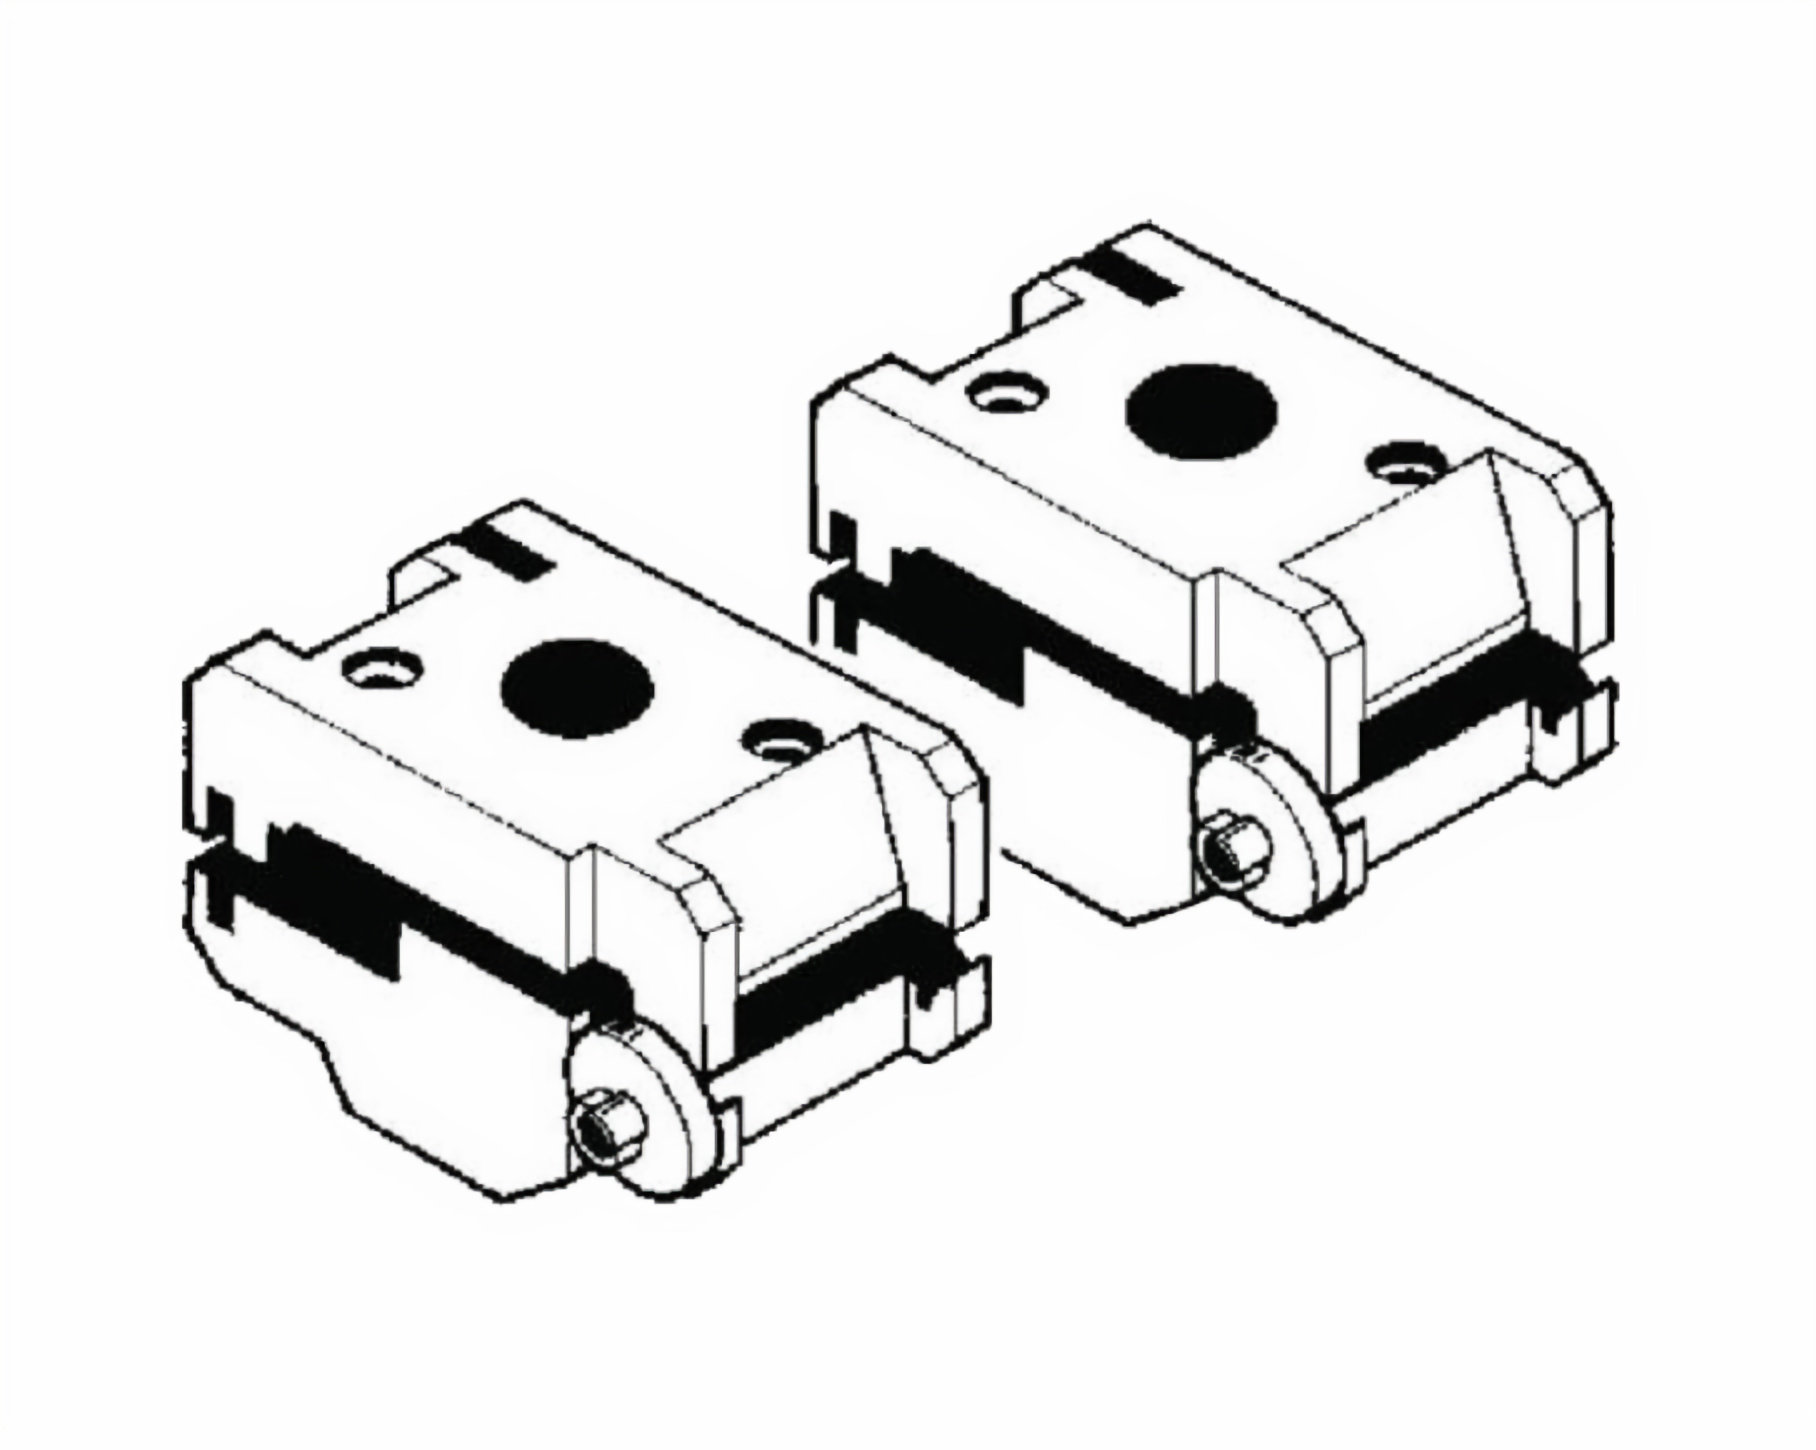 Silca Lancer Adaptor for FORD FO19P / FO20P and Chubb AVA Keys